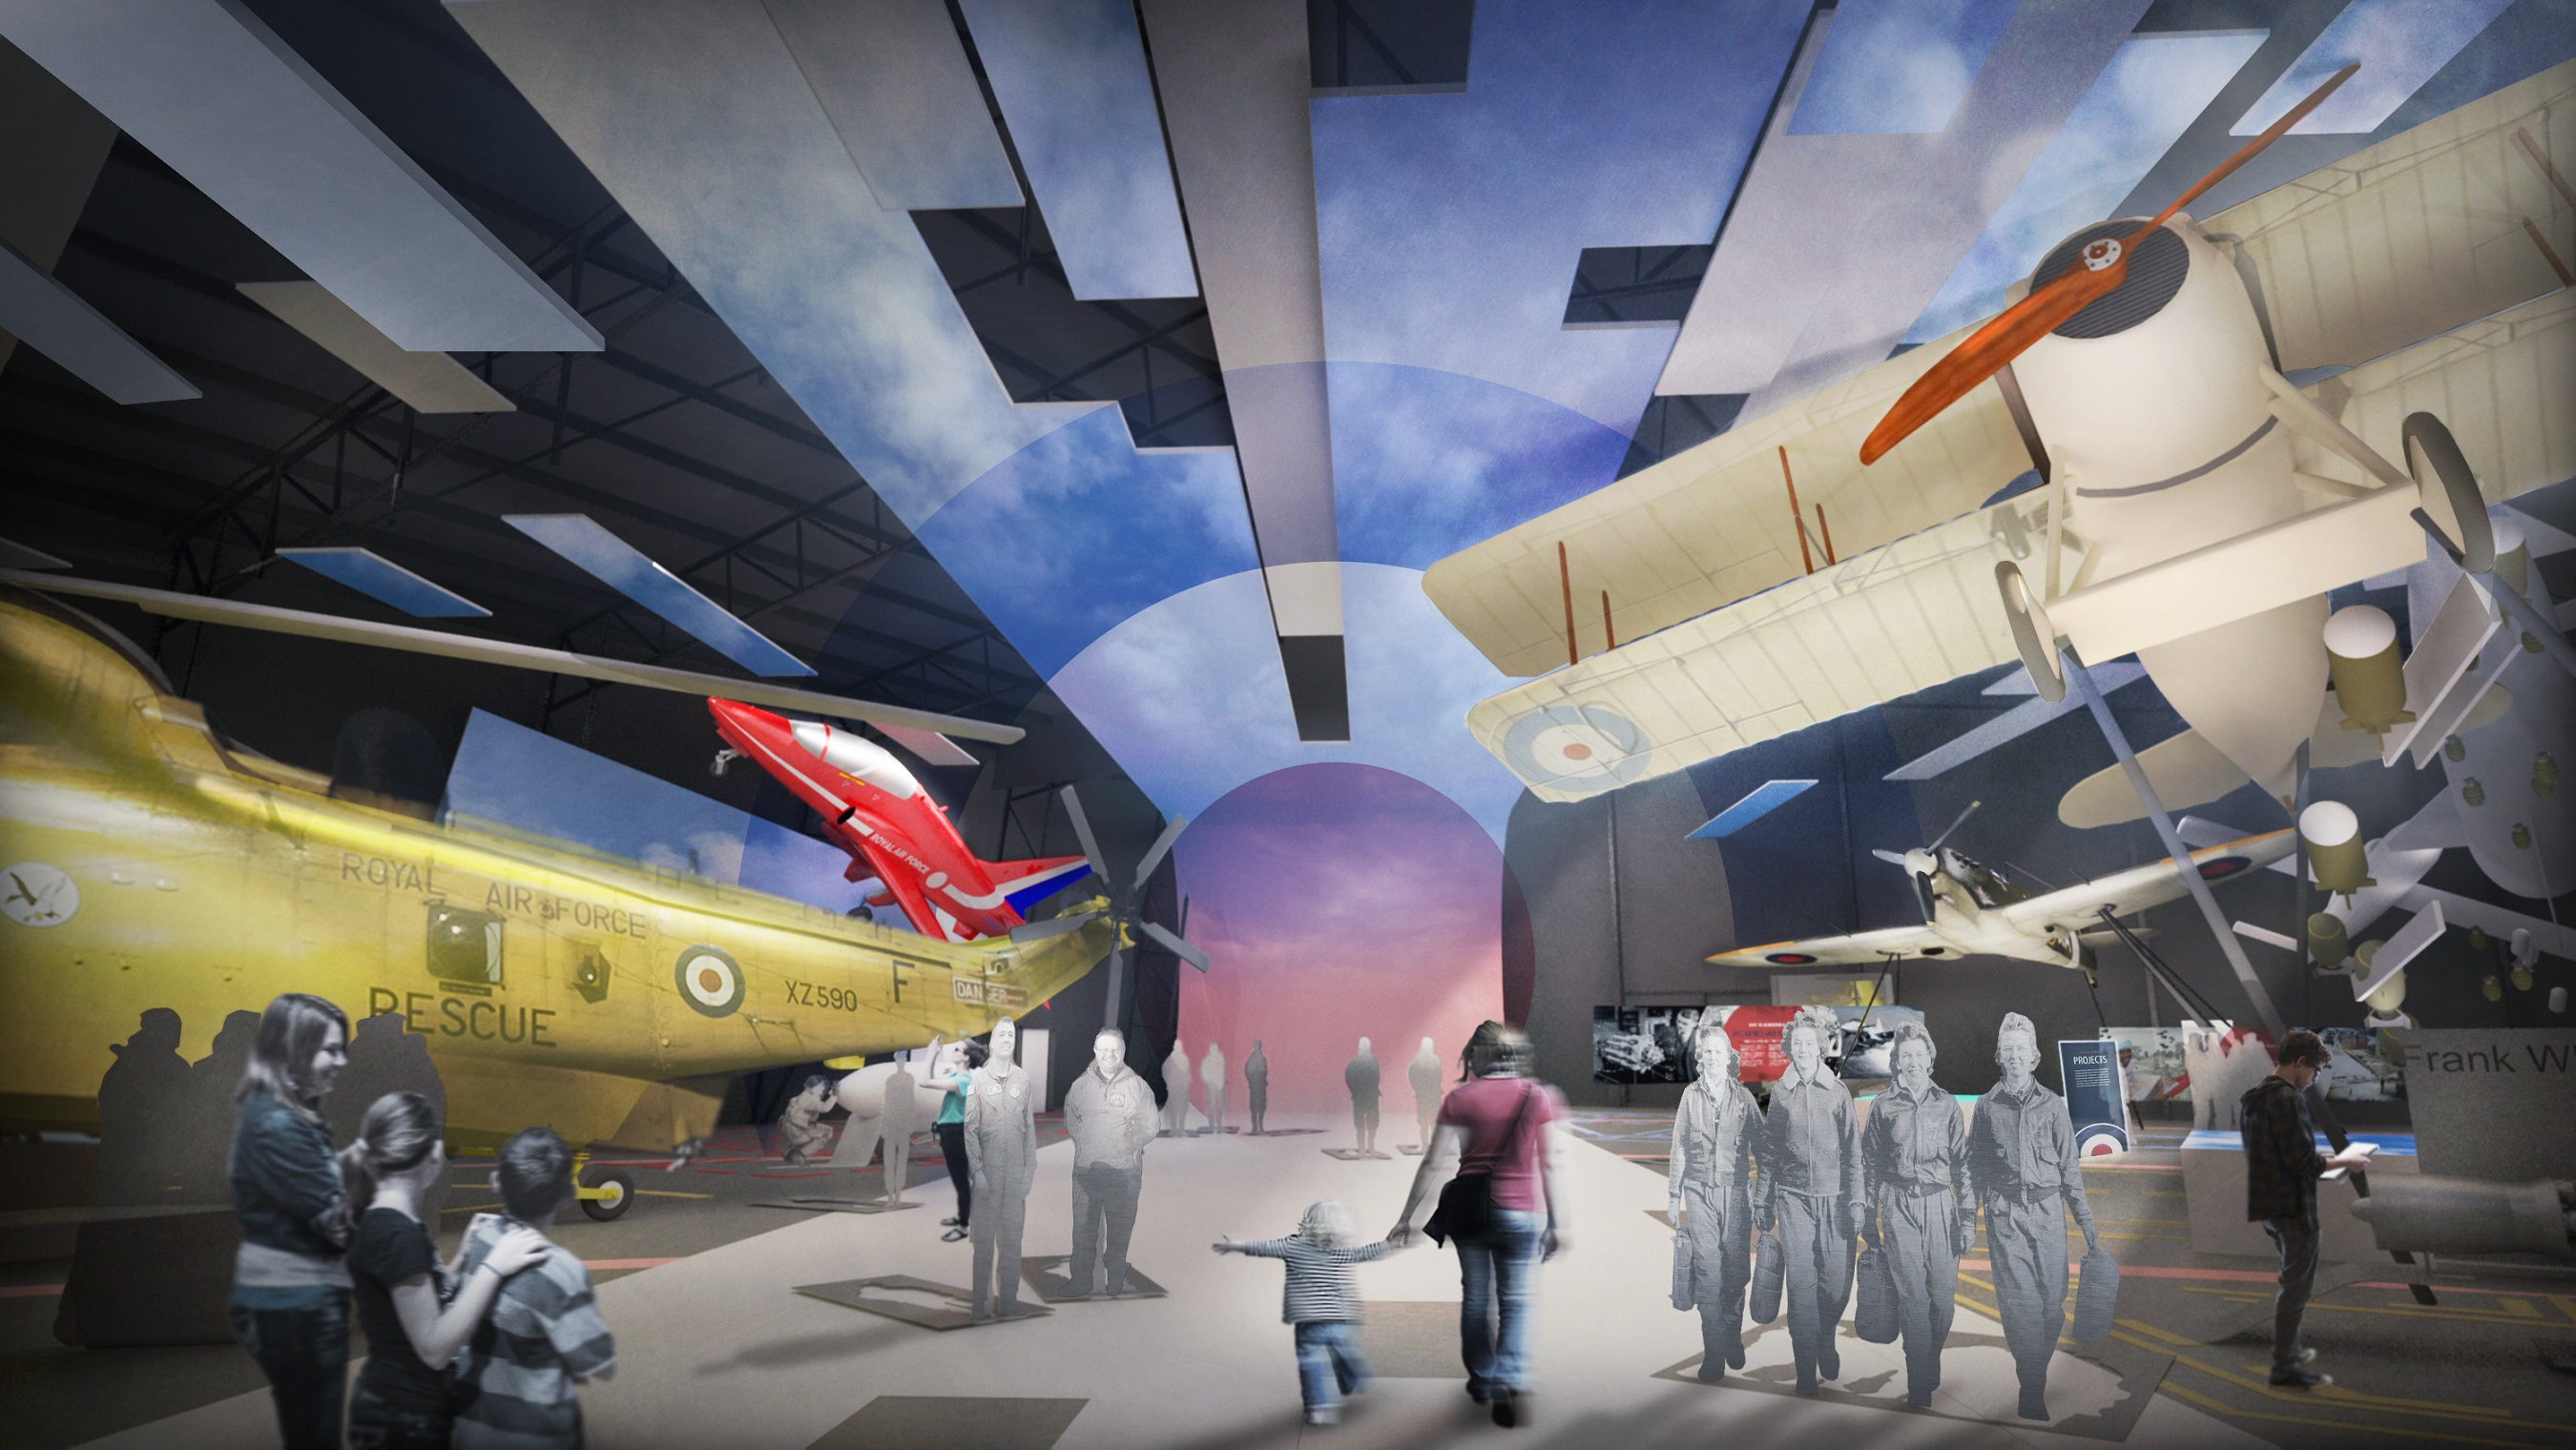 Planned entrance to the new site at RAF Museum, opening 2018 to celebrate 100 years of the Royal Air Force.